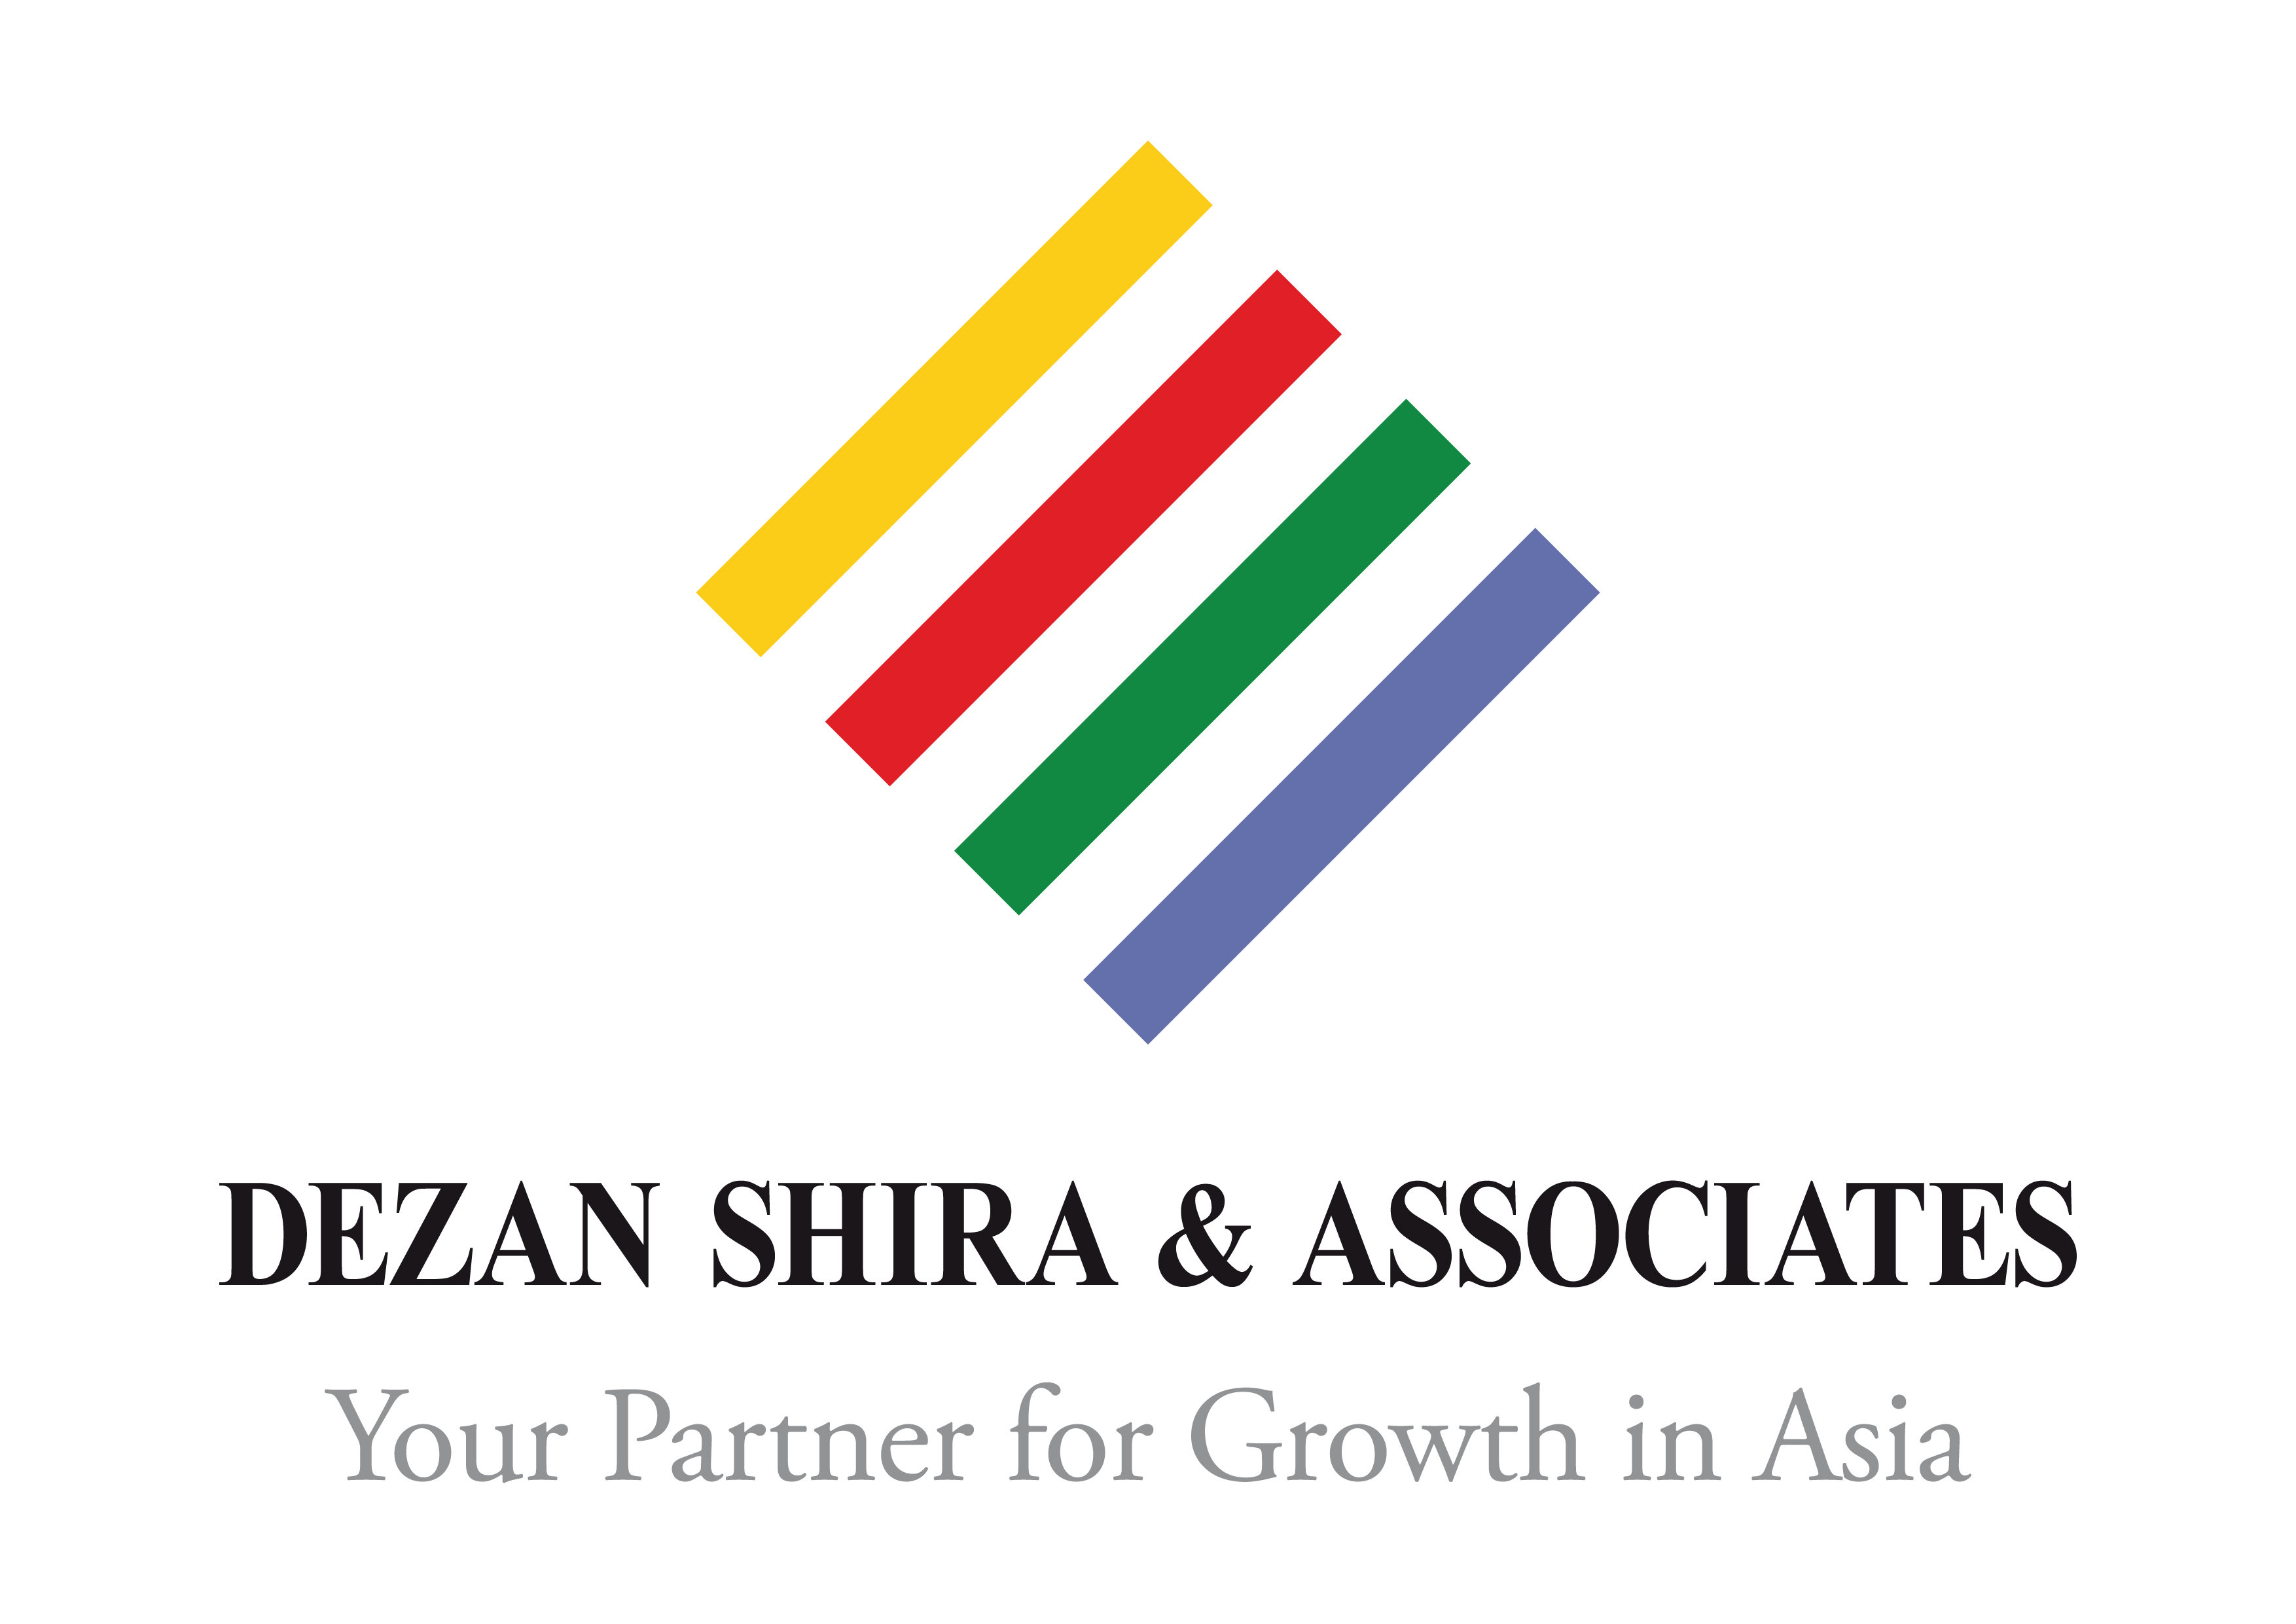 Dezan Shira & Associates logo